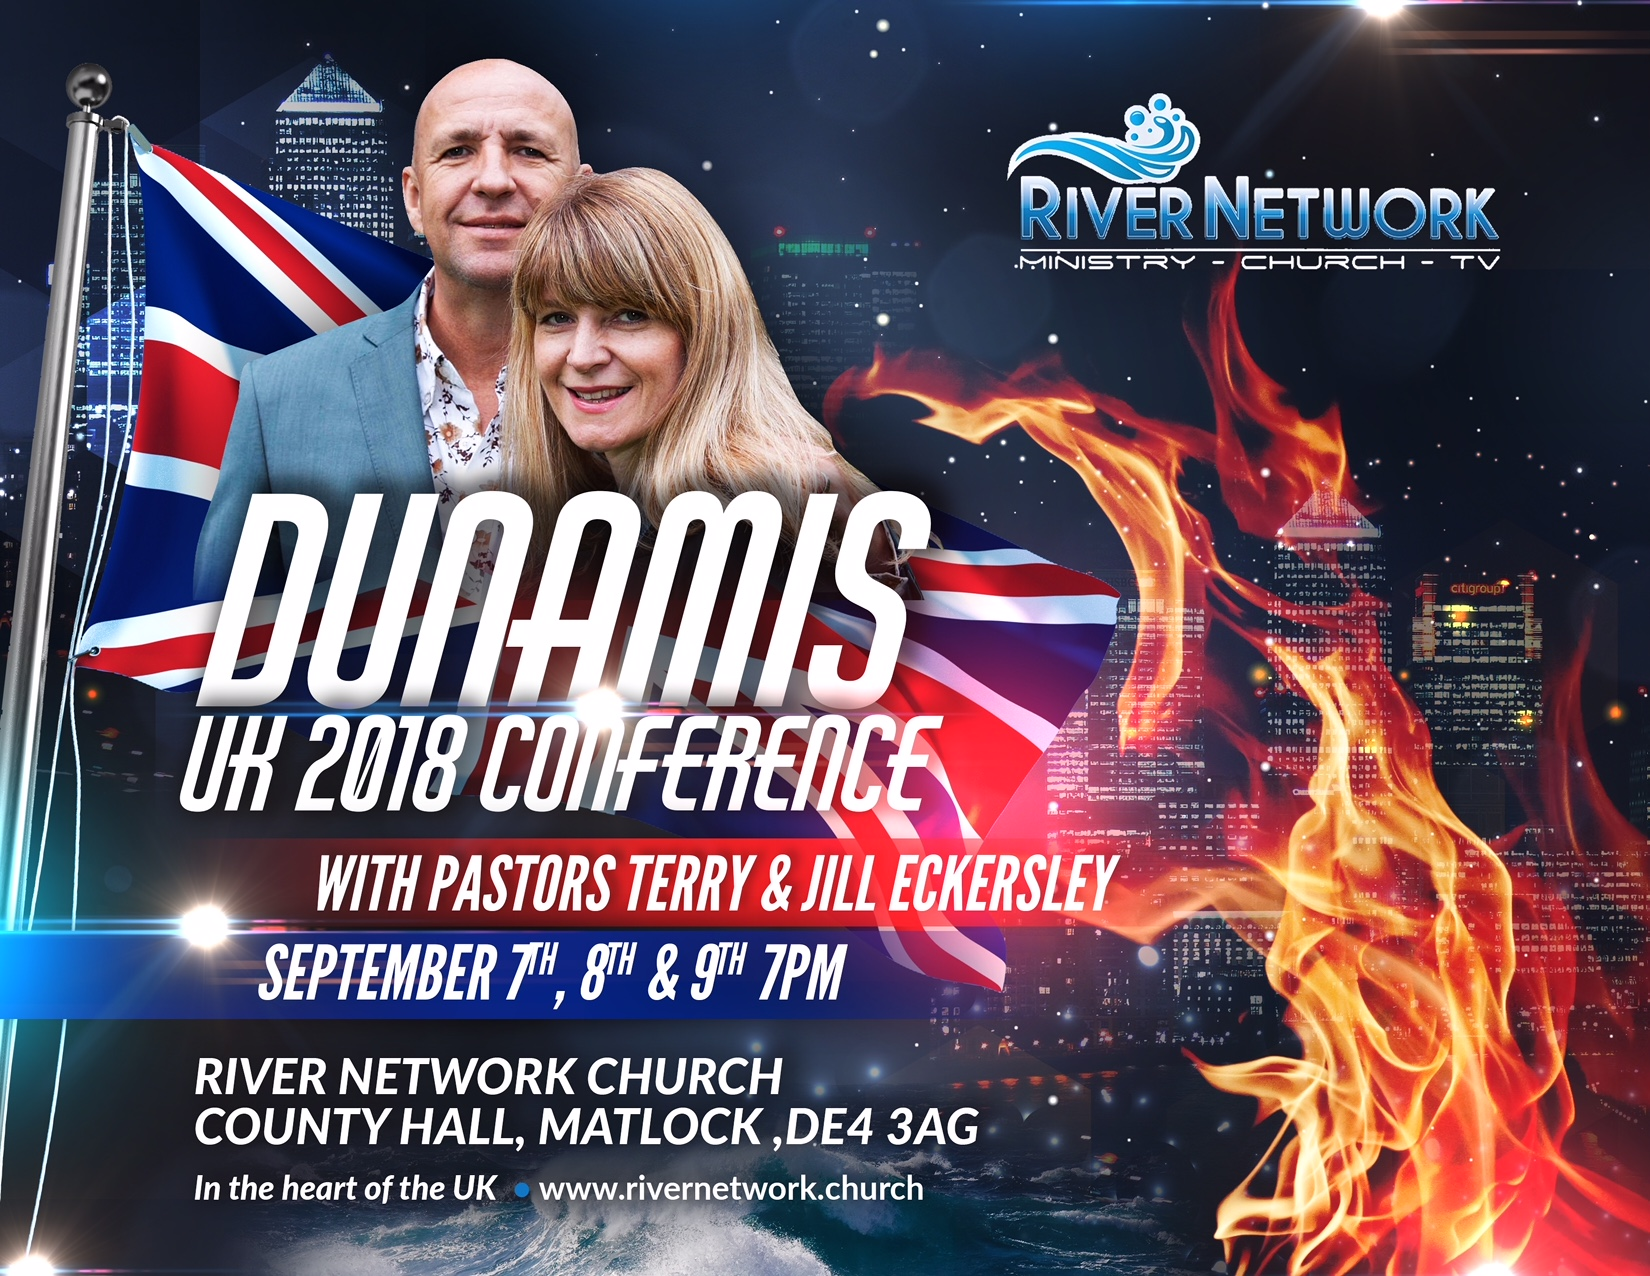 DUNAMIS UK 2018 Conference @ Country Hall Matlock DE4 3AG